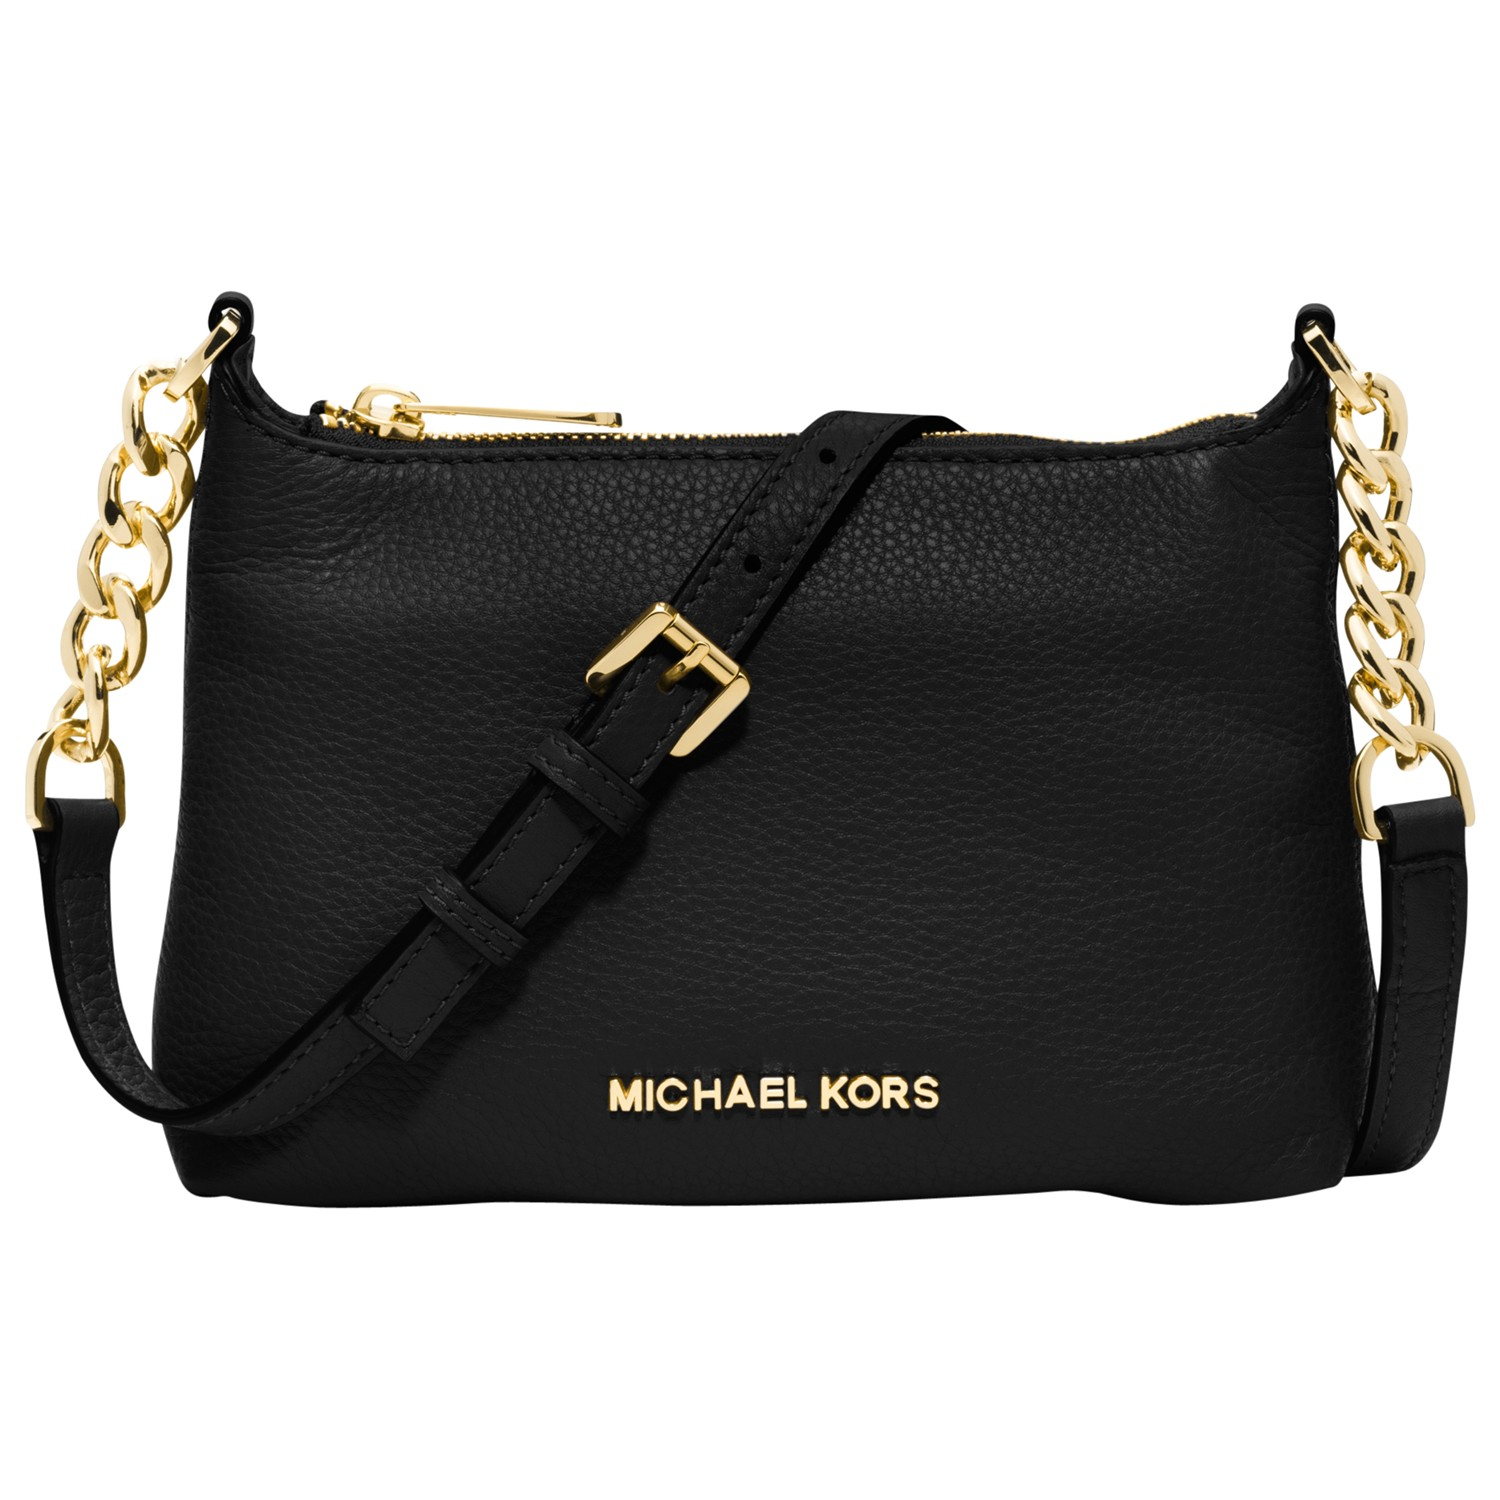 Michael Kors Bedford Chain Strap Across Body Handbag In